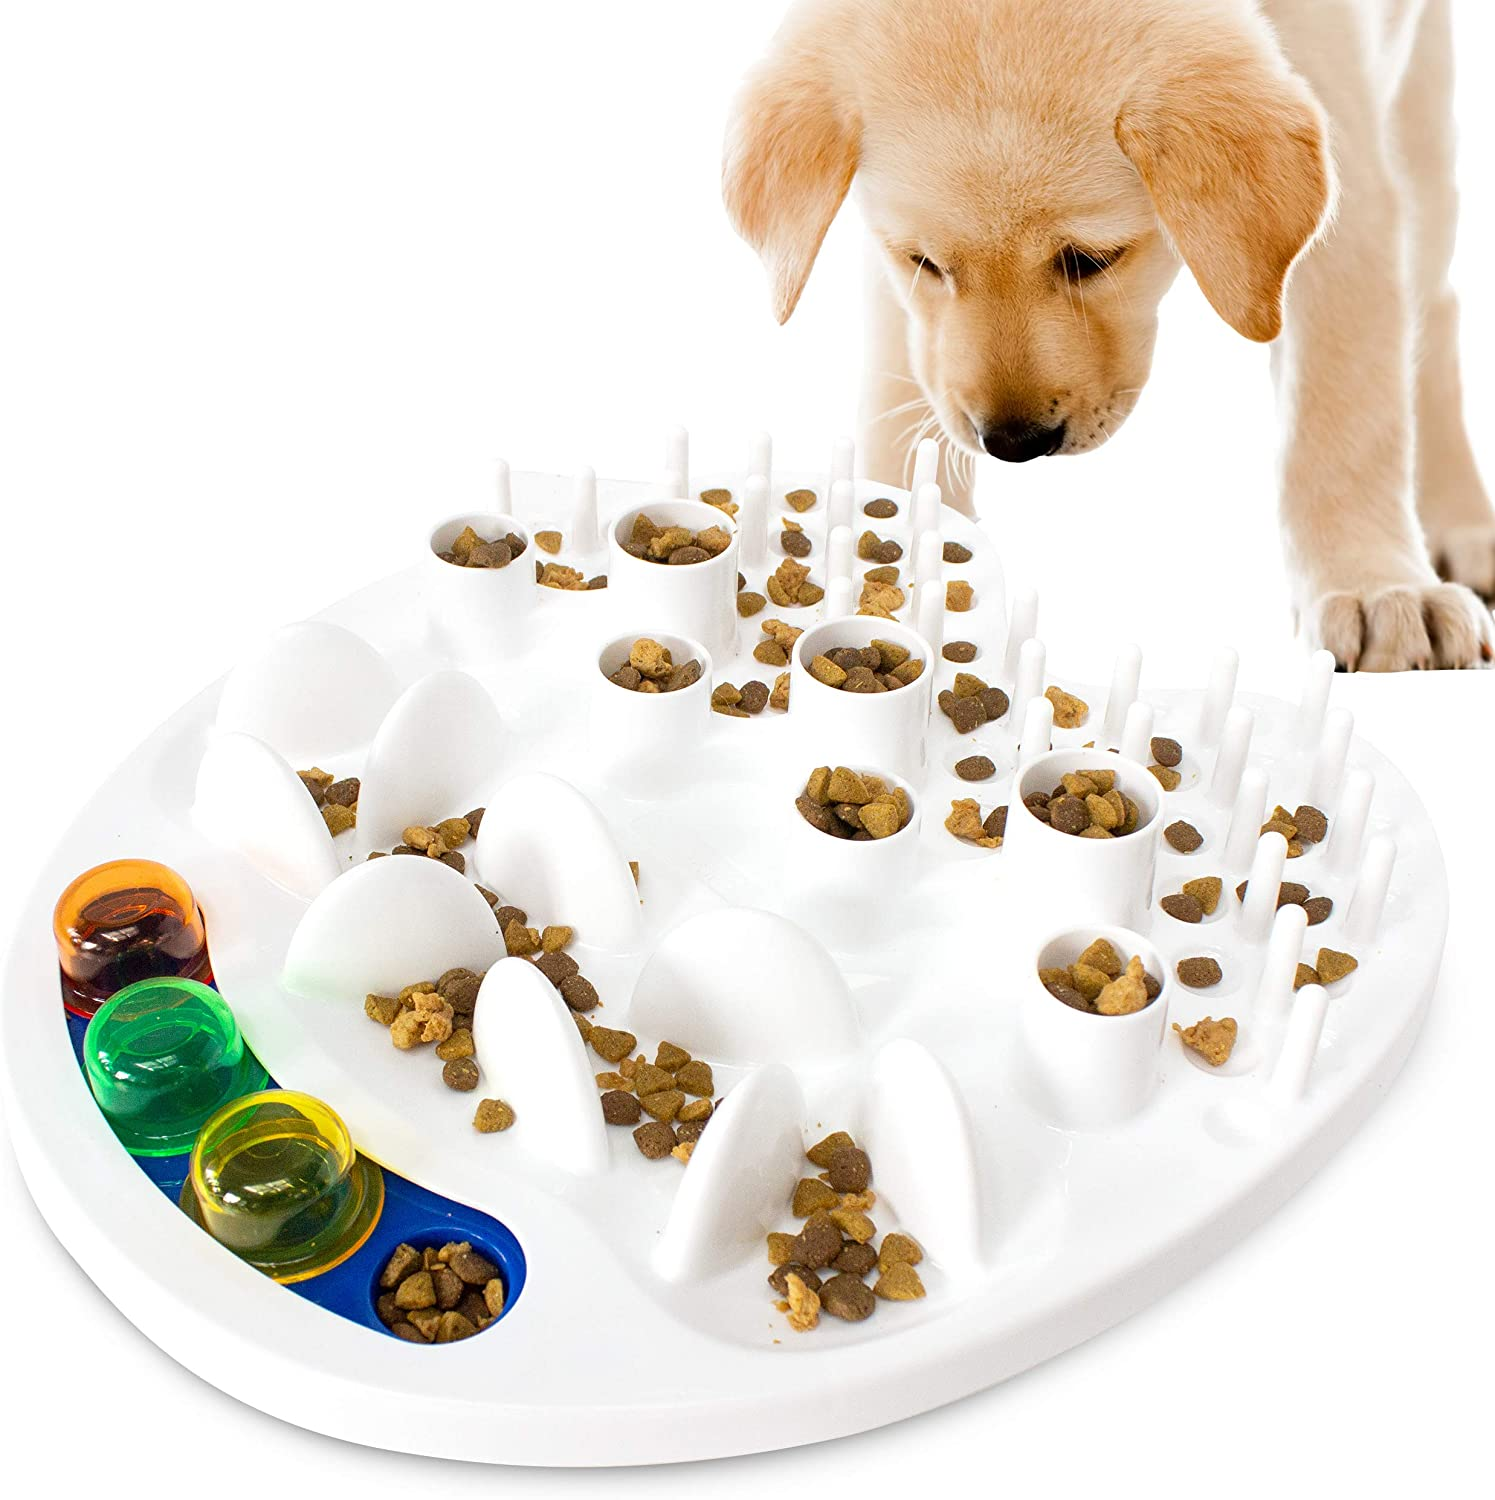 Downtown Pet Supply Slow Feed Food Bowl, Fun Maze Puzzle Designs Anti-Gulping No Choke Pet Feeders, Interactive Toy Feeding Game for Small, Medium, and Large Dogs (Interactive Toy Feeder)